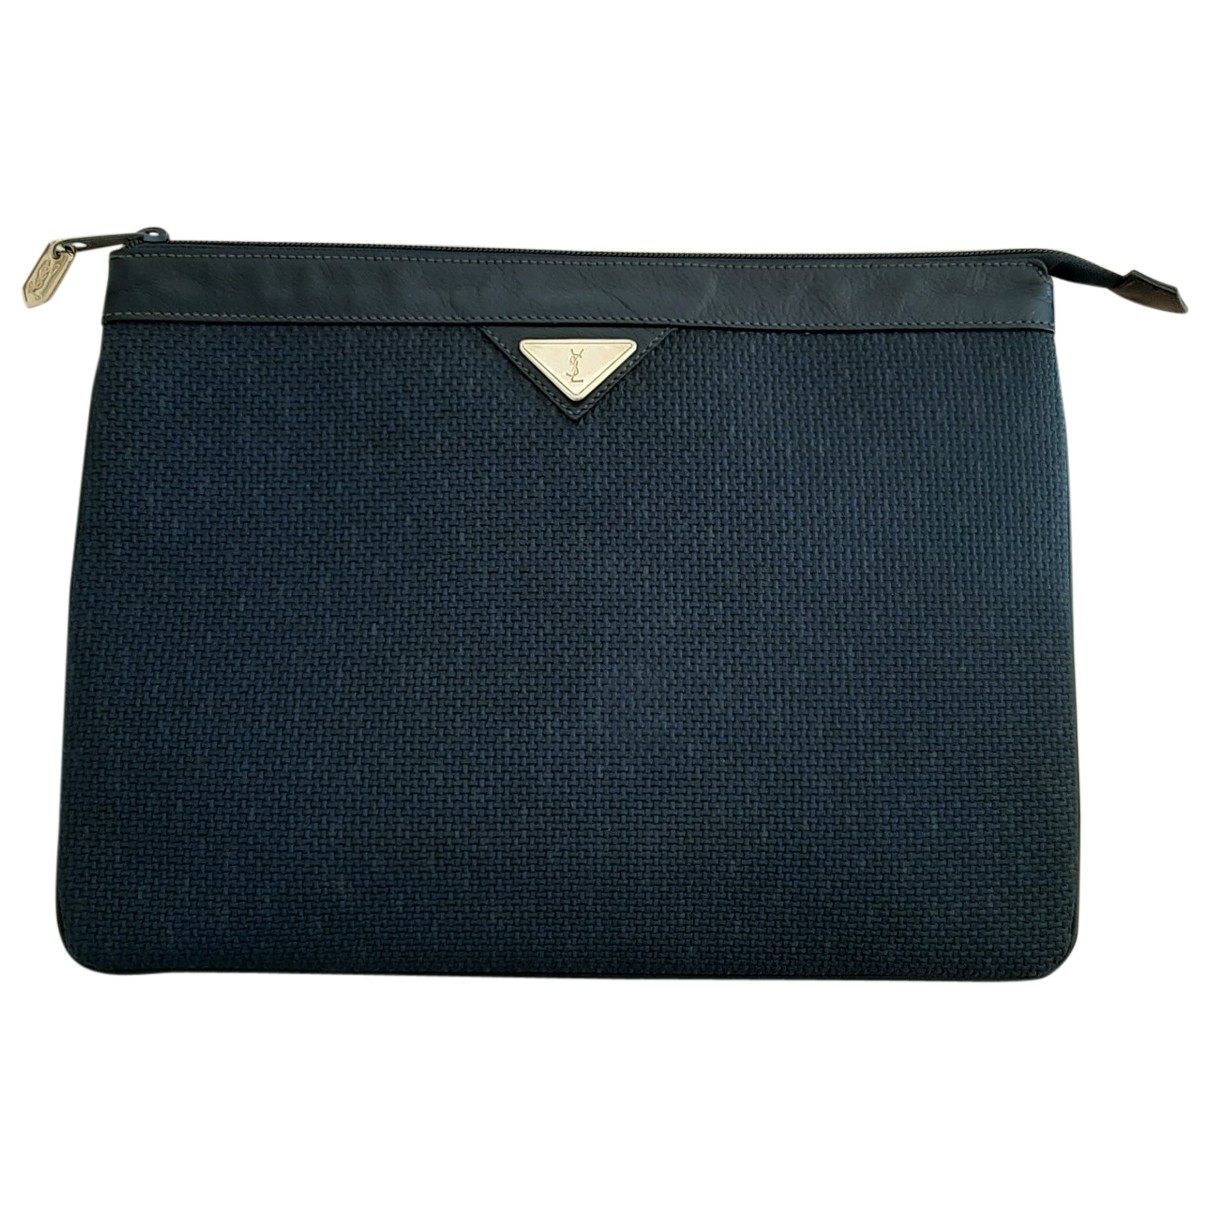 Yves Saint Laurent N Blue Cloth handbag for Women N